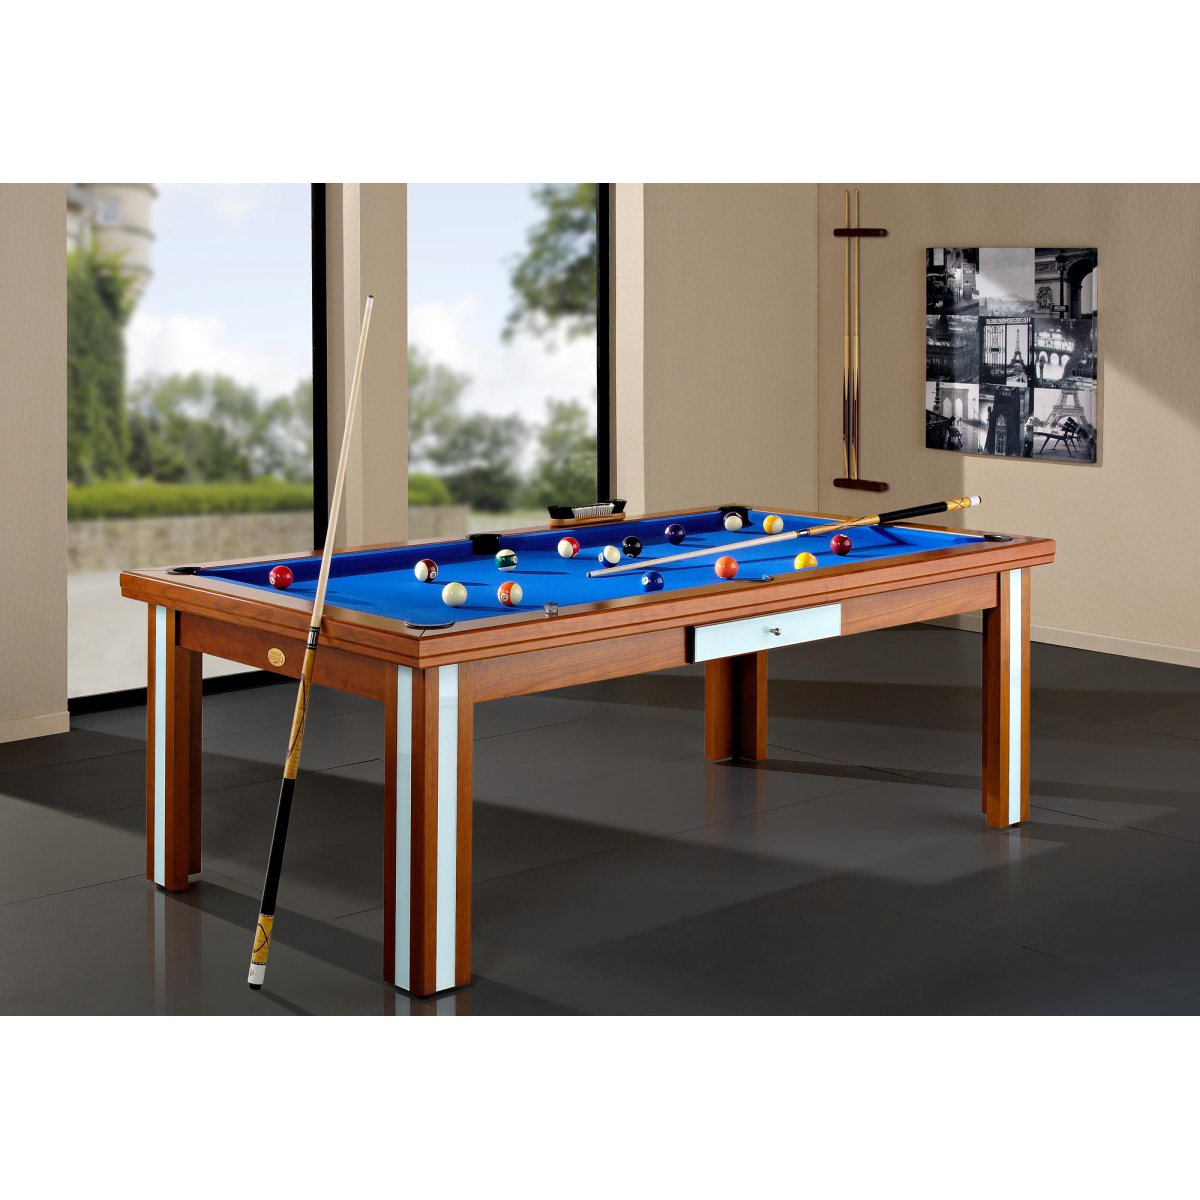 Table billard transformable paris - Table de billard transformable ...